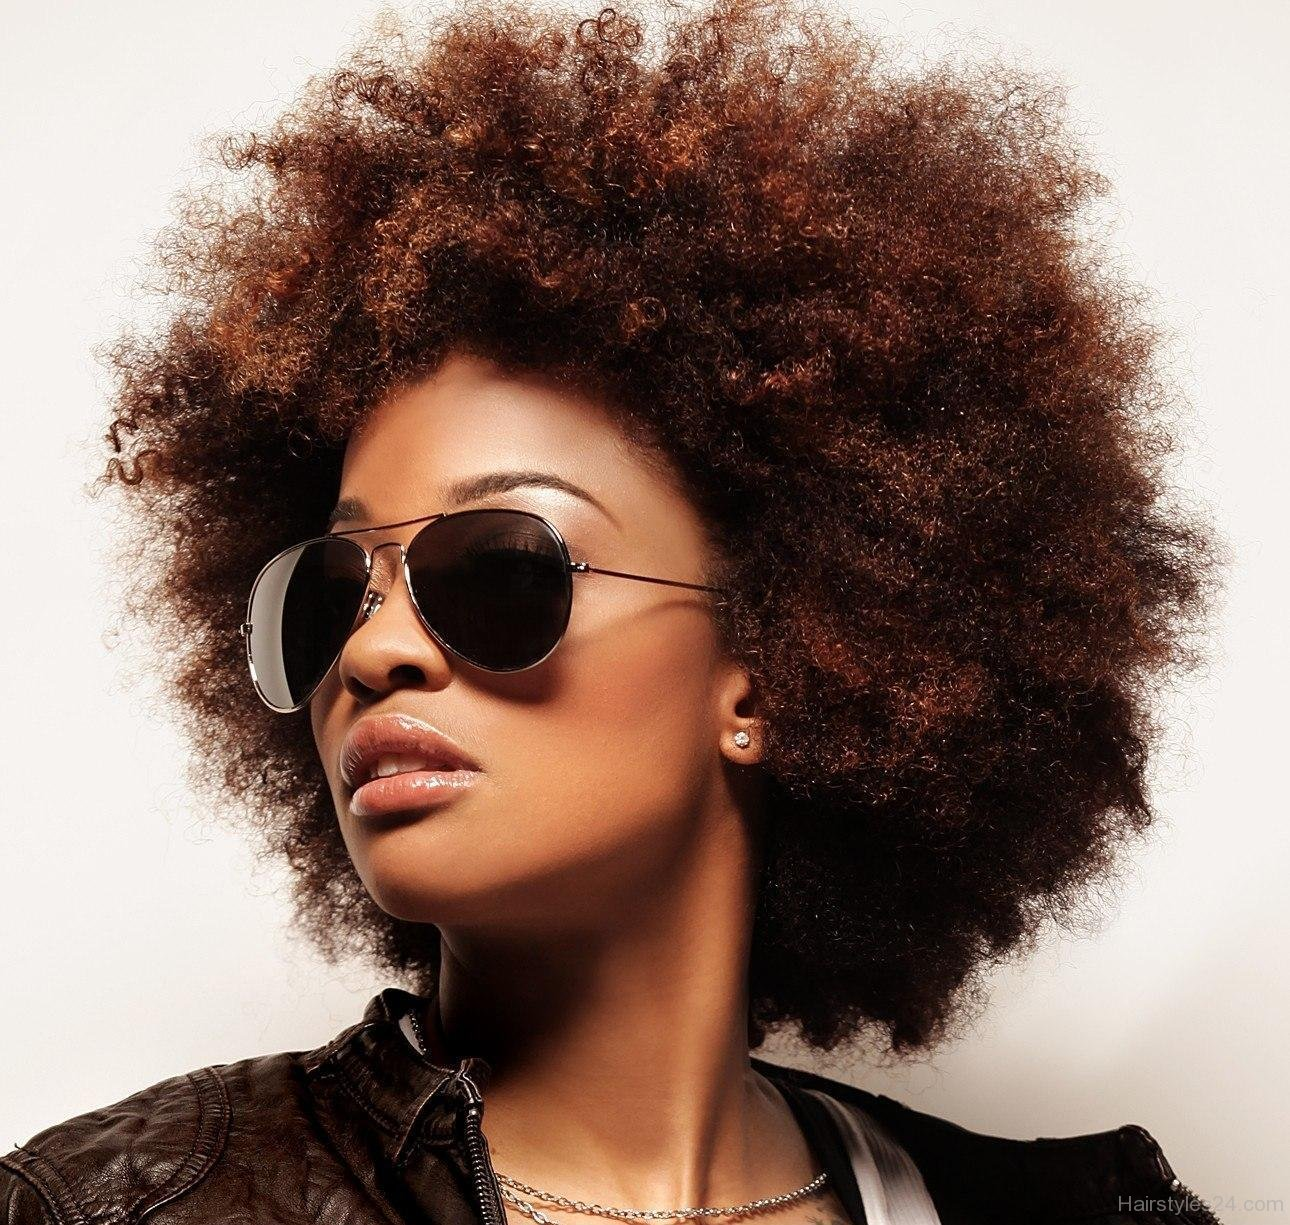 Image result for image of black woman afro hair